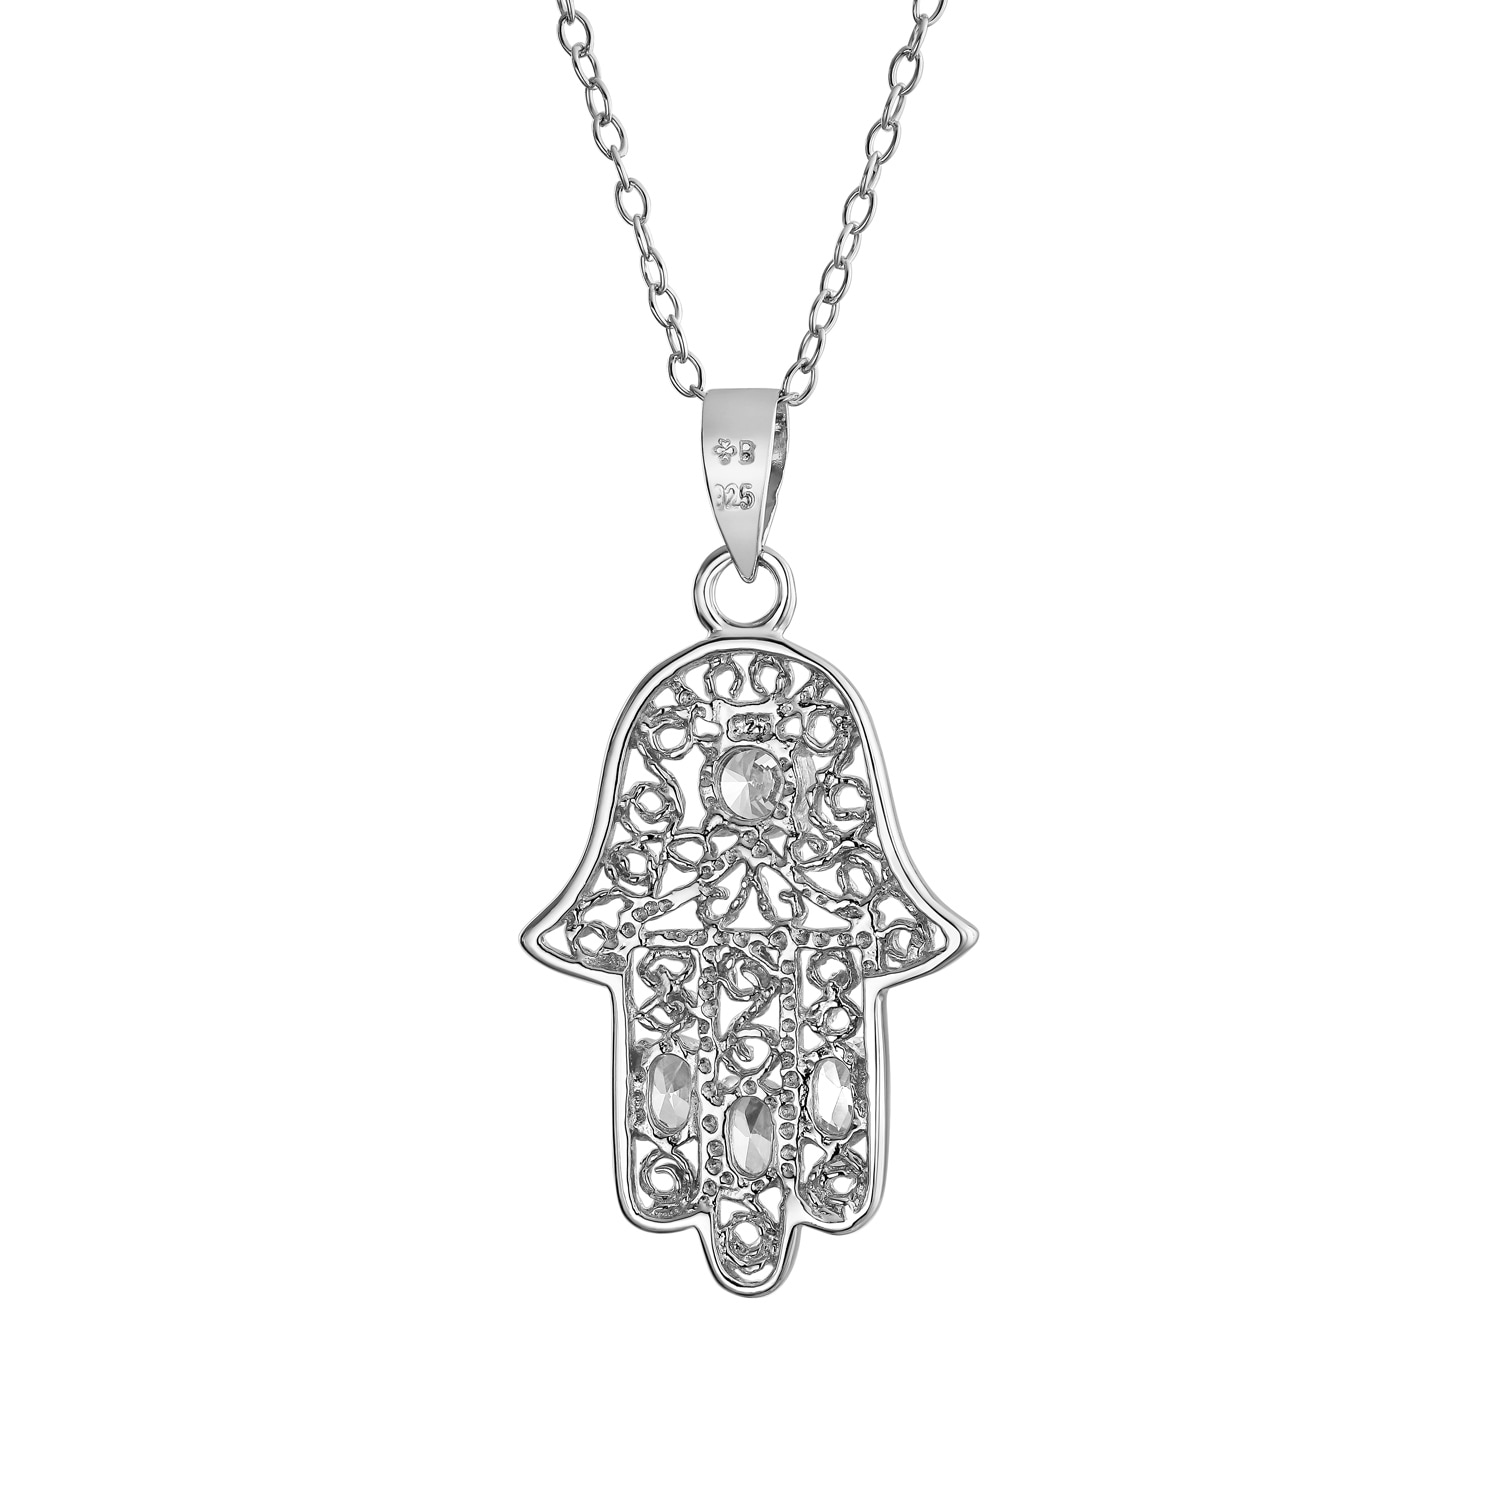 Filigree Solitaire Pendant Simulated Stone 925 Sterling Silver Choose Color